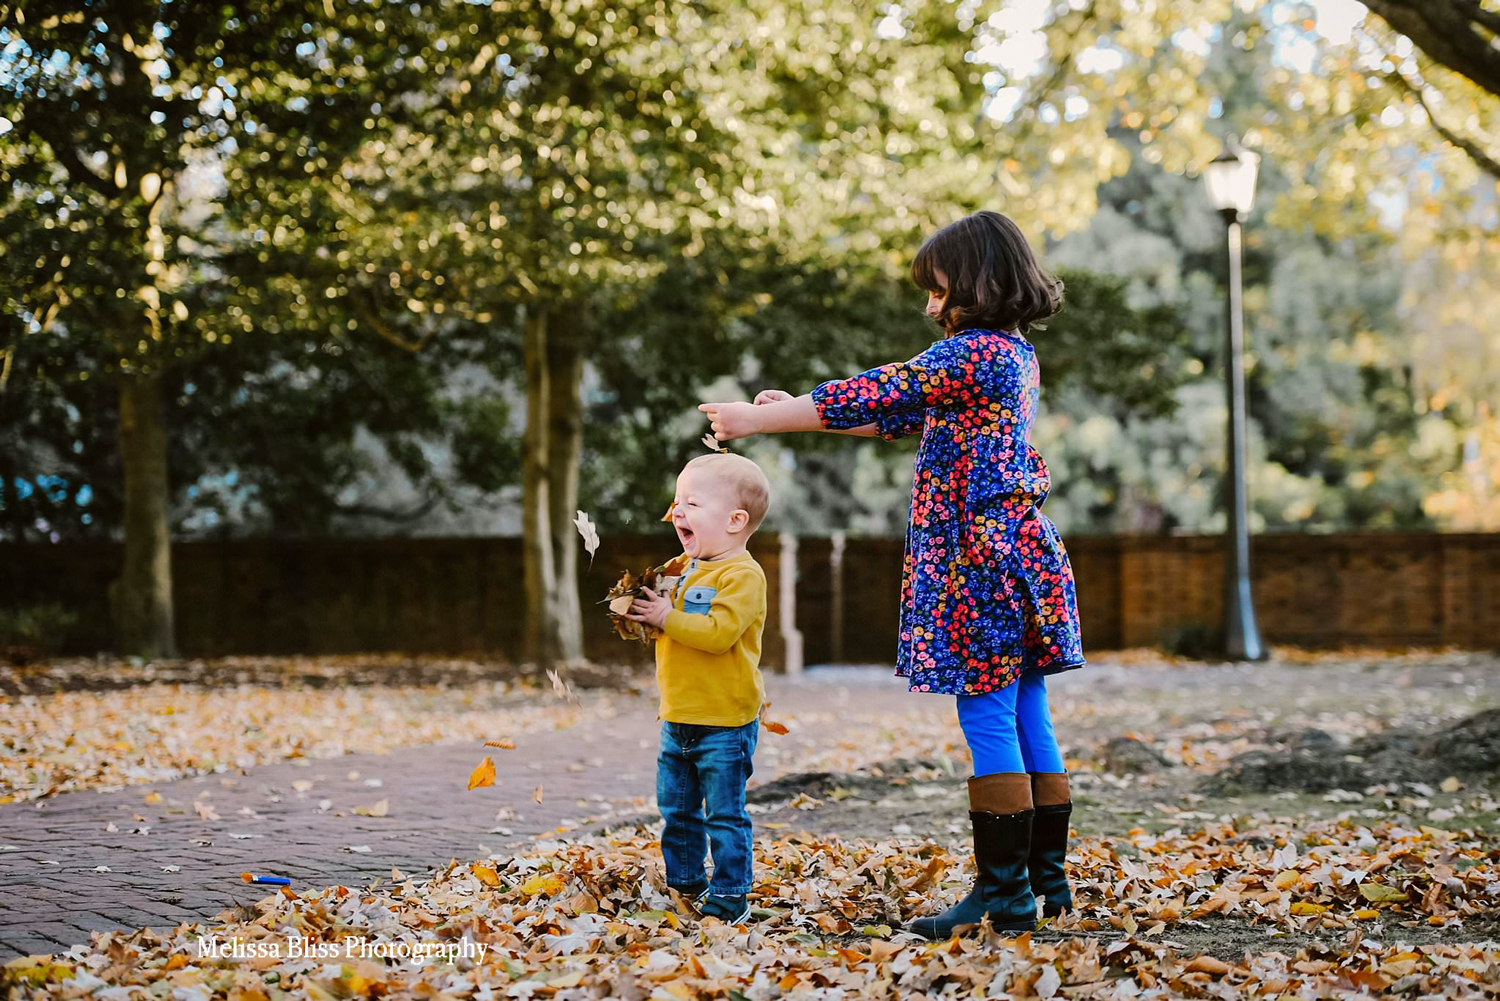 young-siblings-play-in-the-fall-leaves-colonial-williamsburg-family-photo-session-by-melissa-bliss-photography.jpg